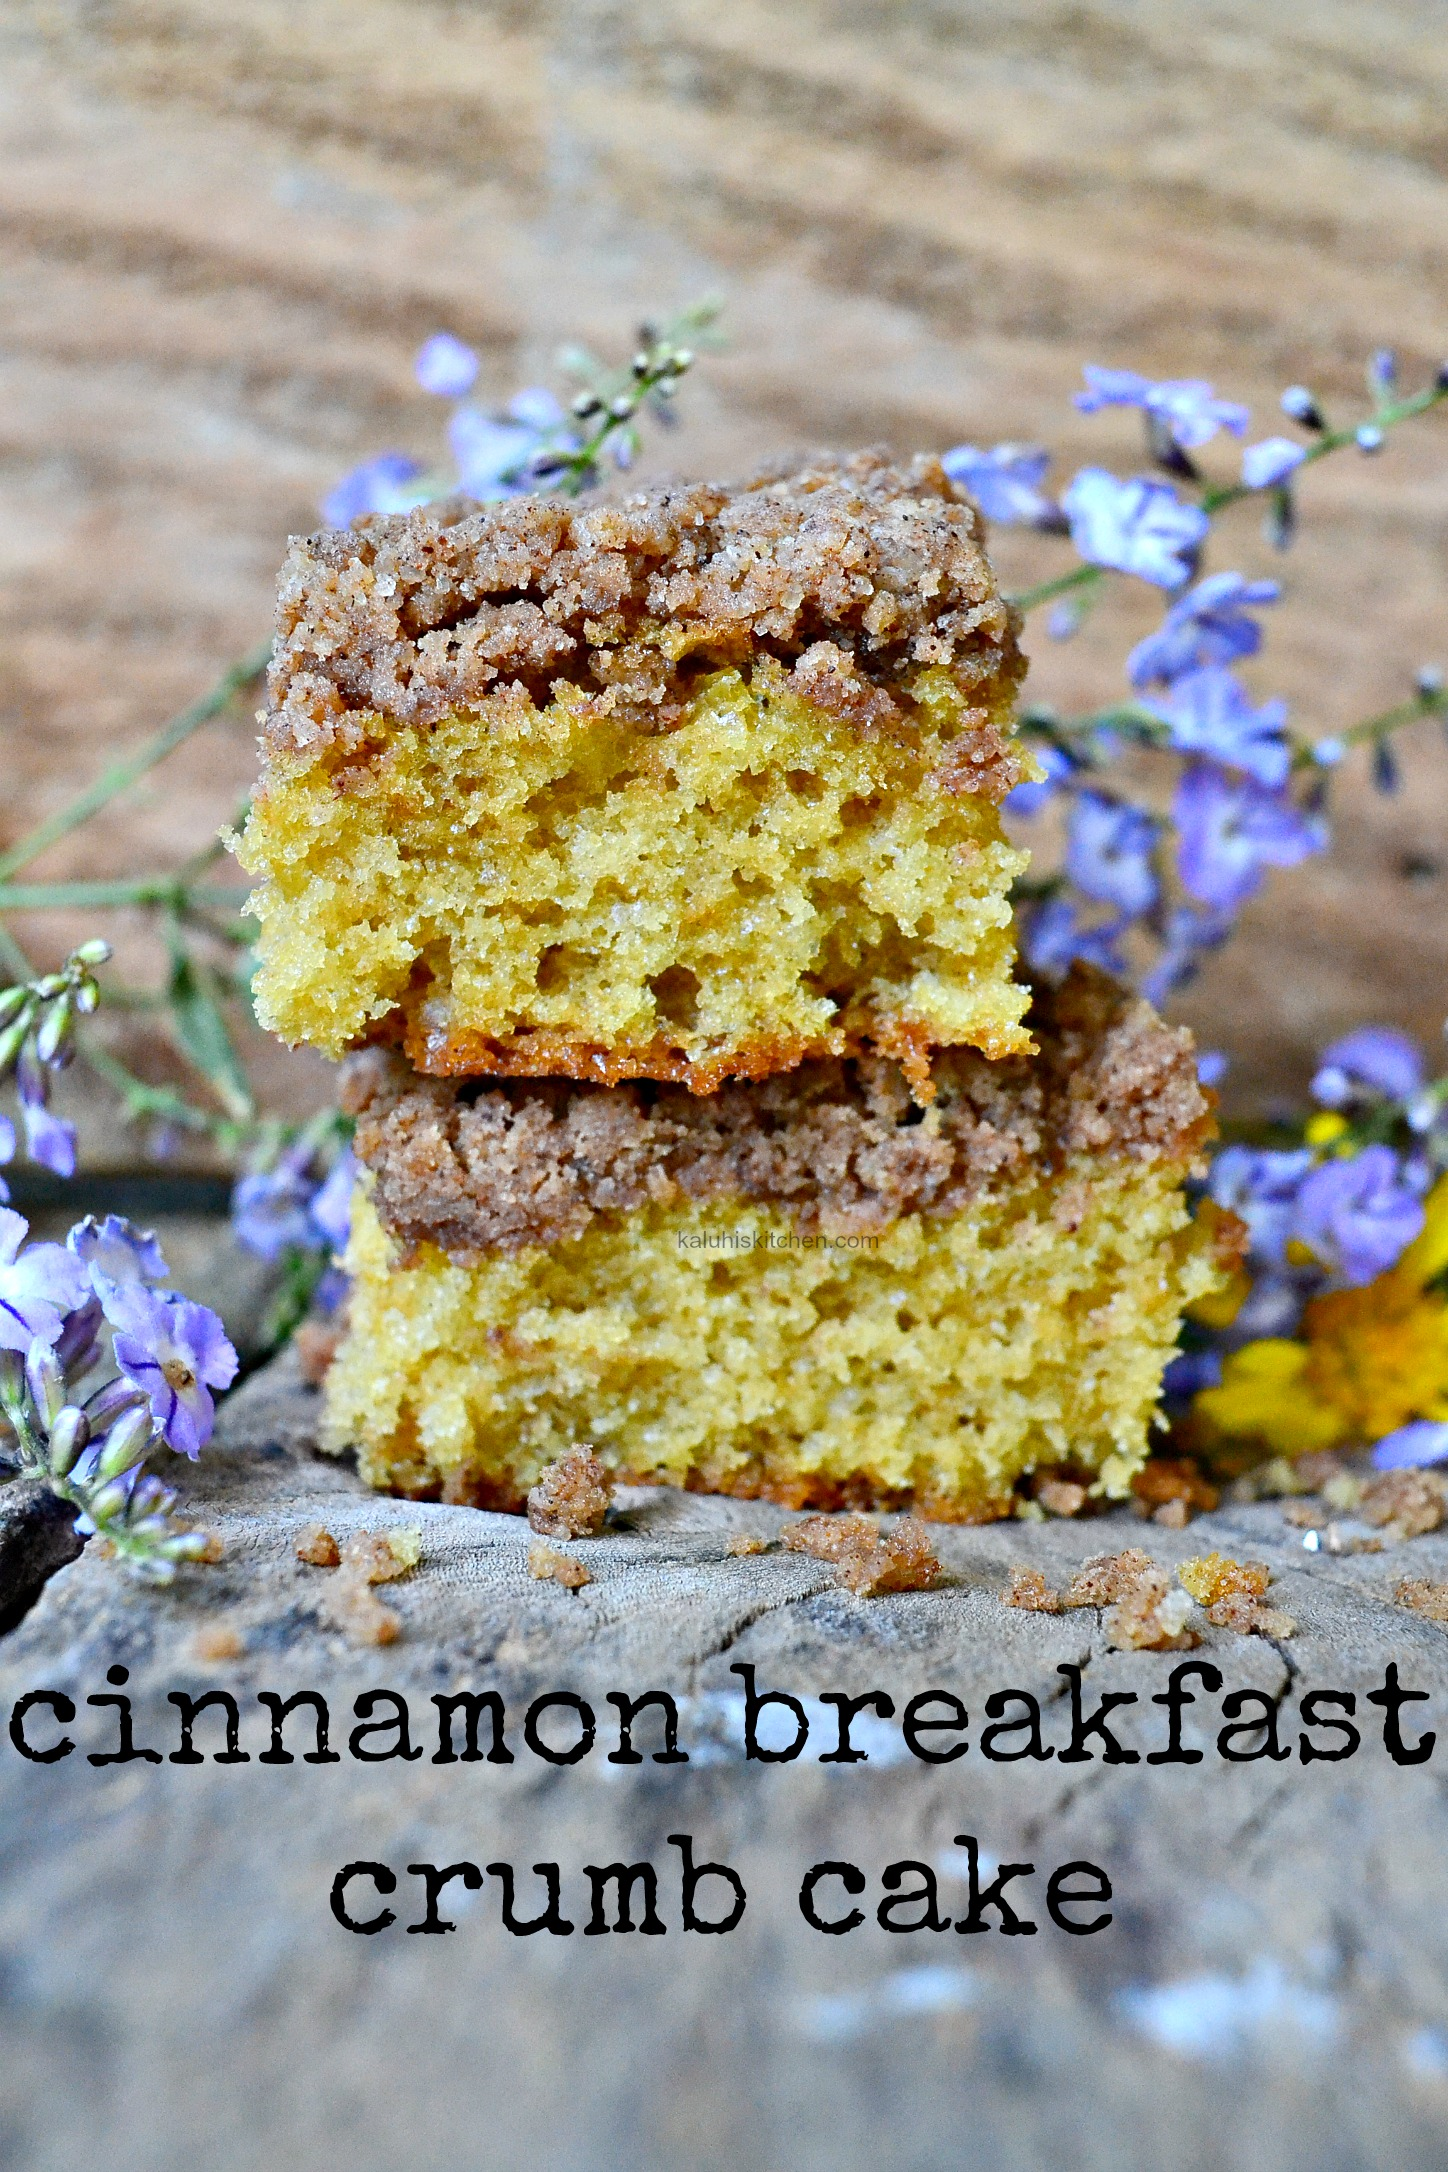 breakfast crumb cake with cinnamon_kaluhiskitchen.com_how to make a crumb cake_best african food blogs_best african food bloggers